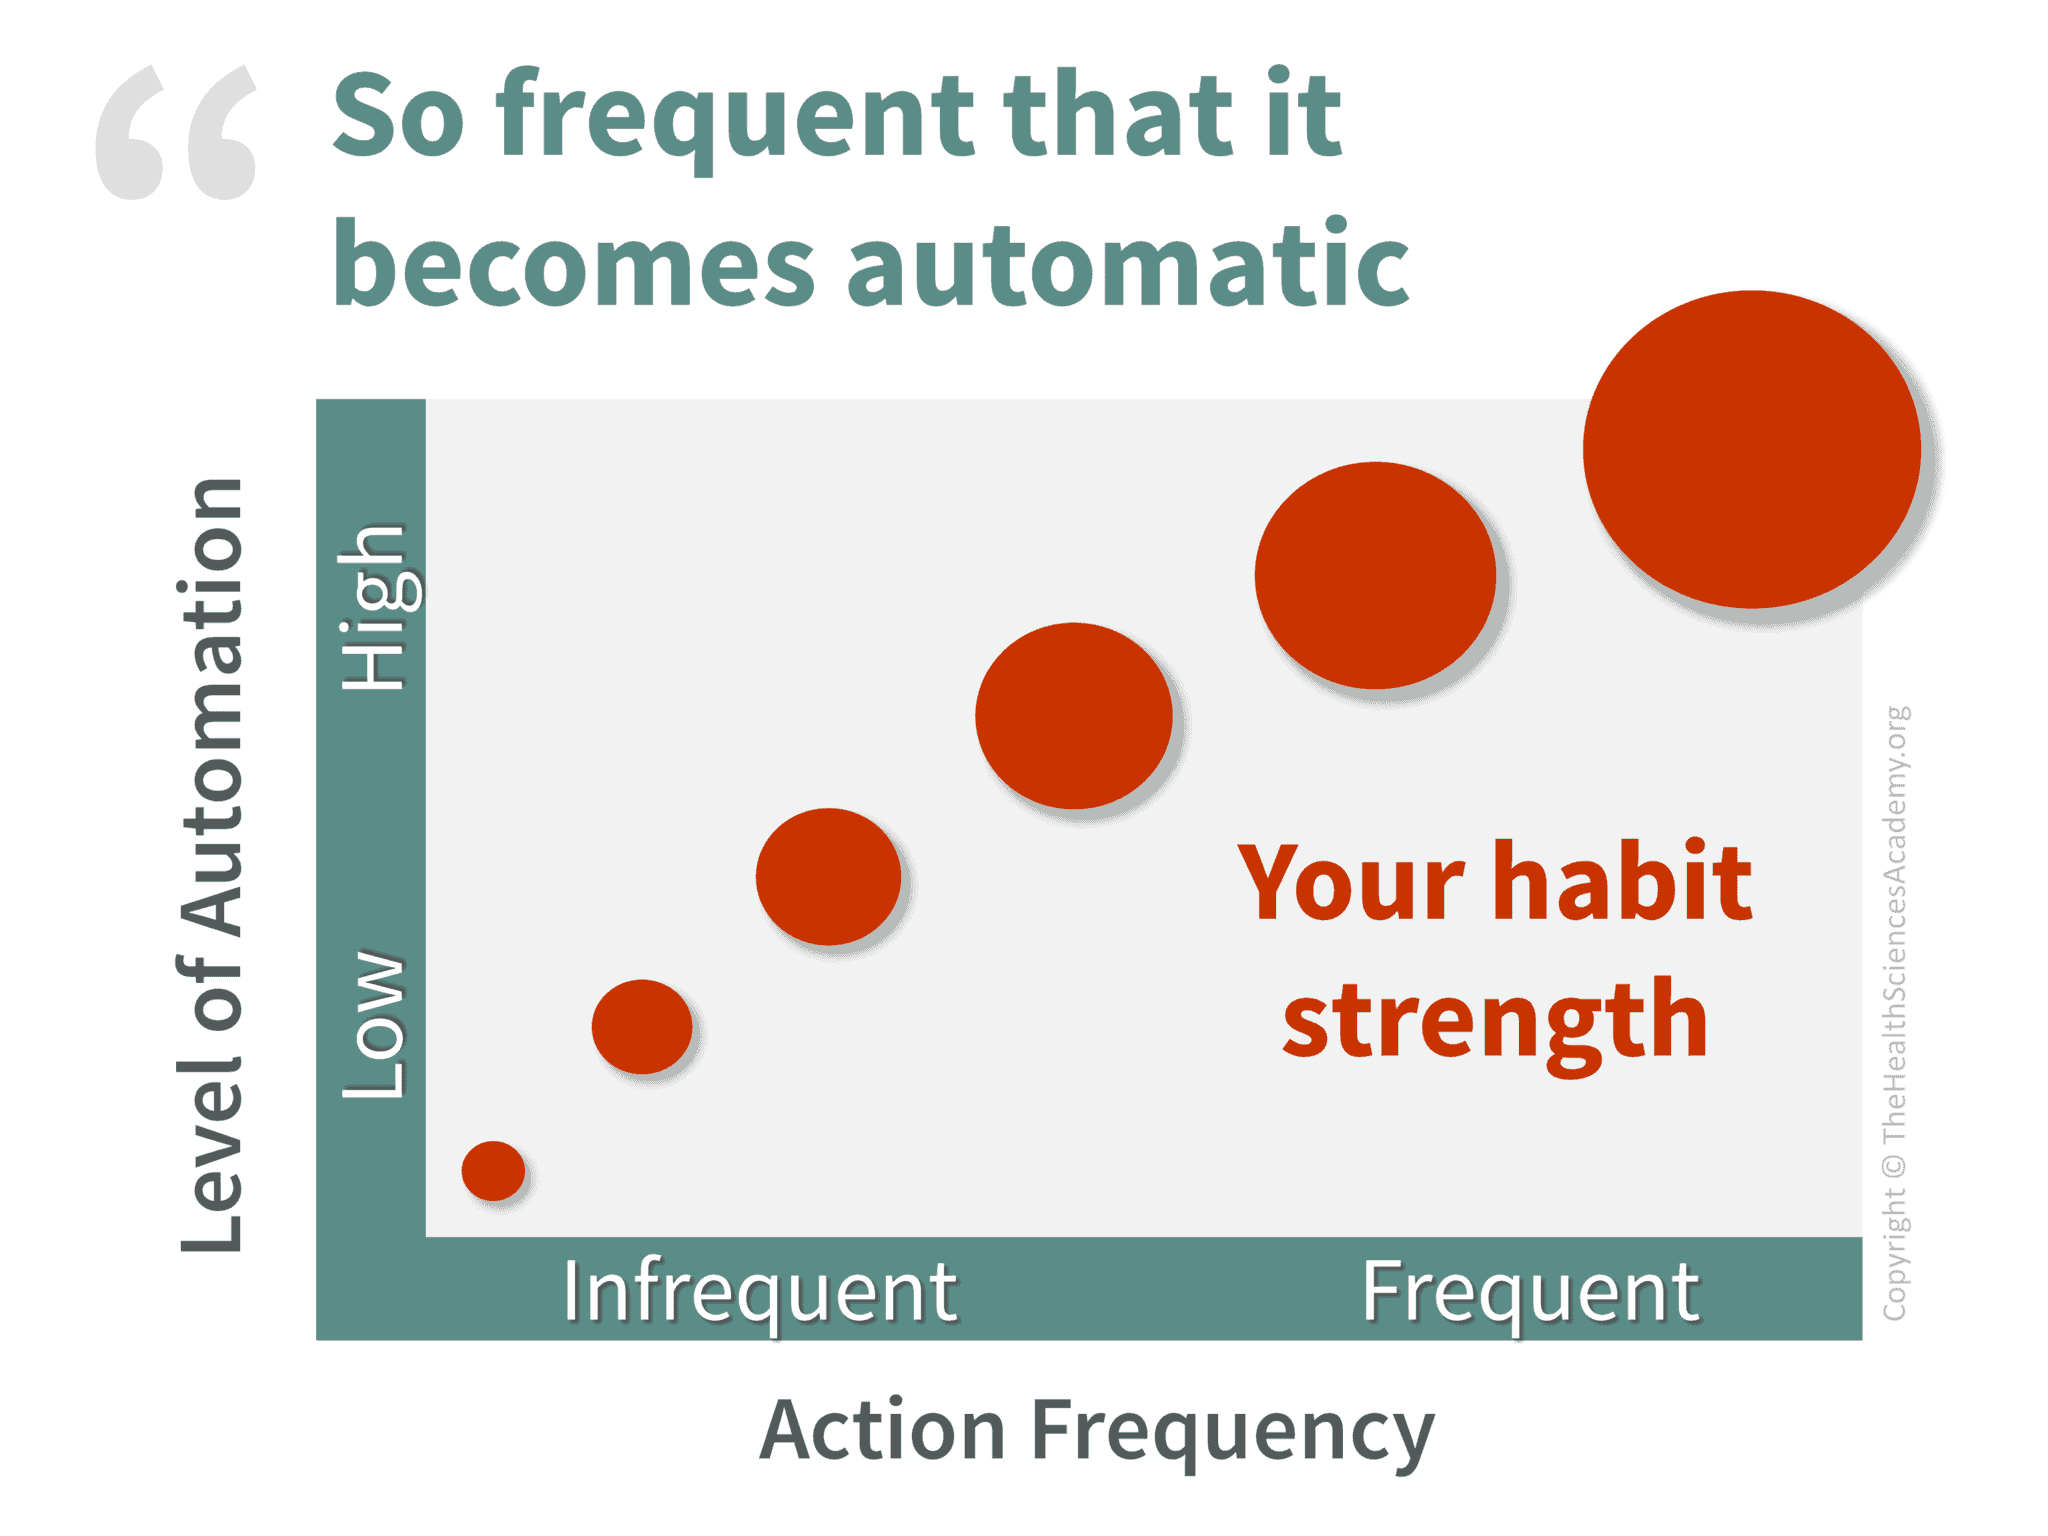 Habit Strength = Action Frequency x Level of Automation